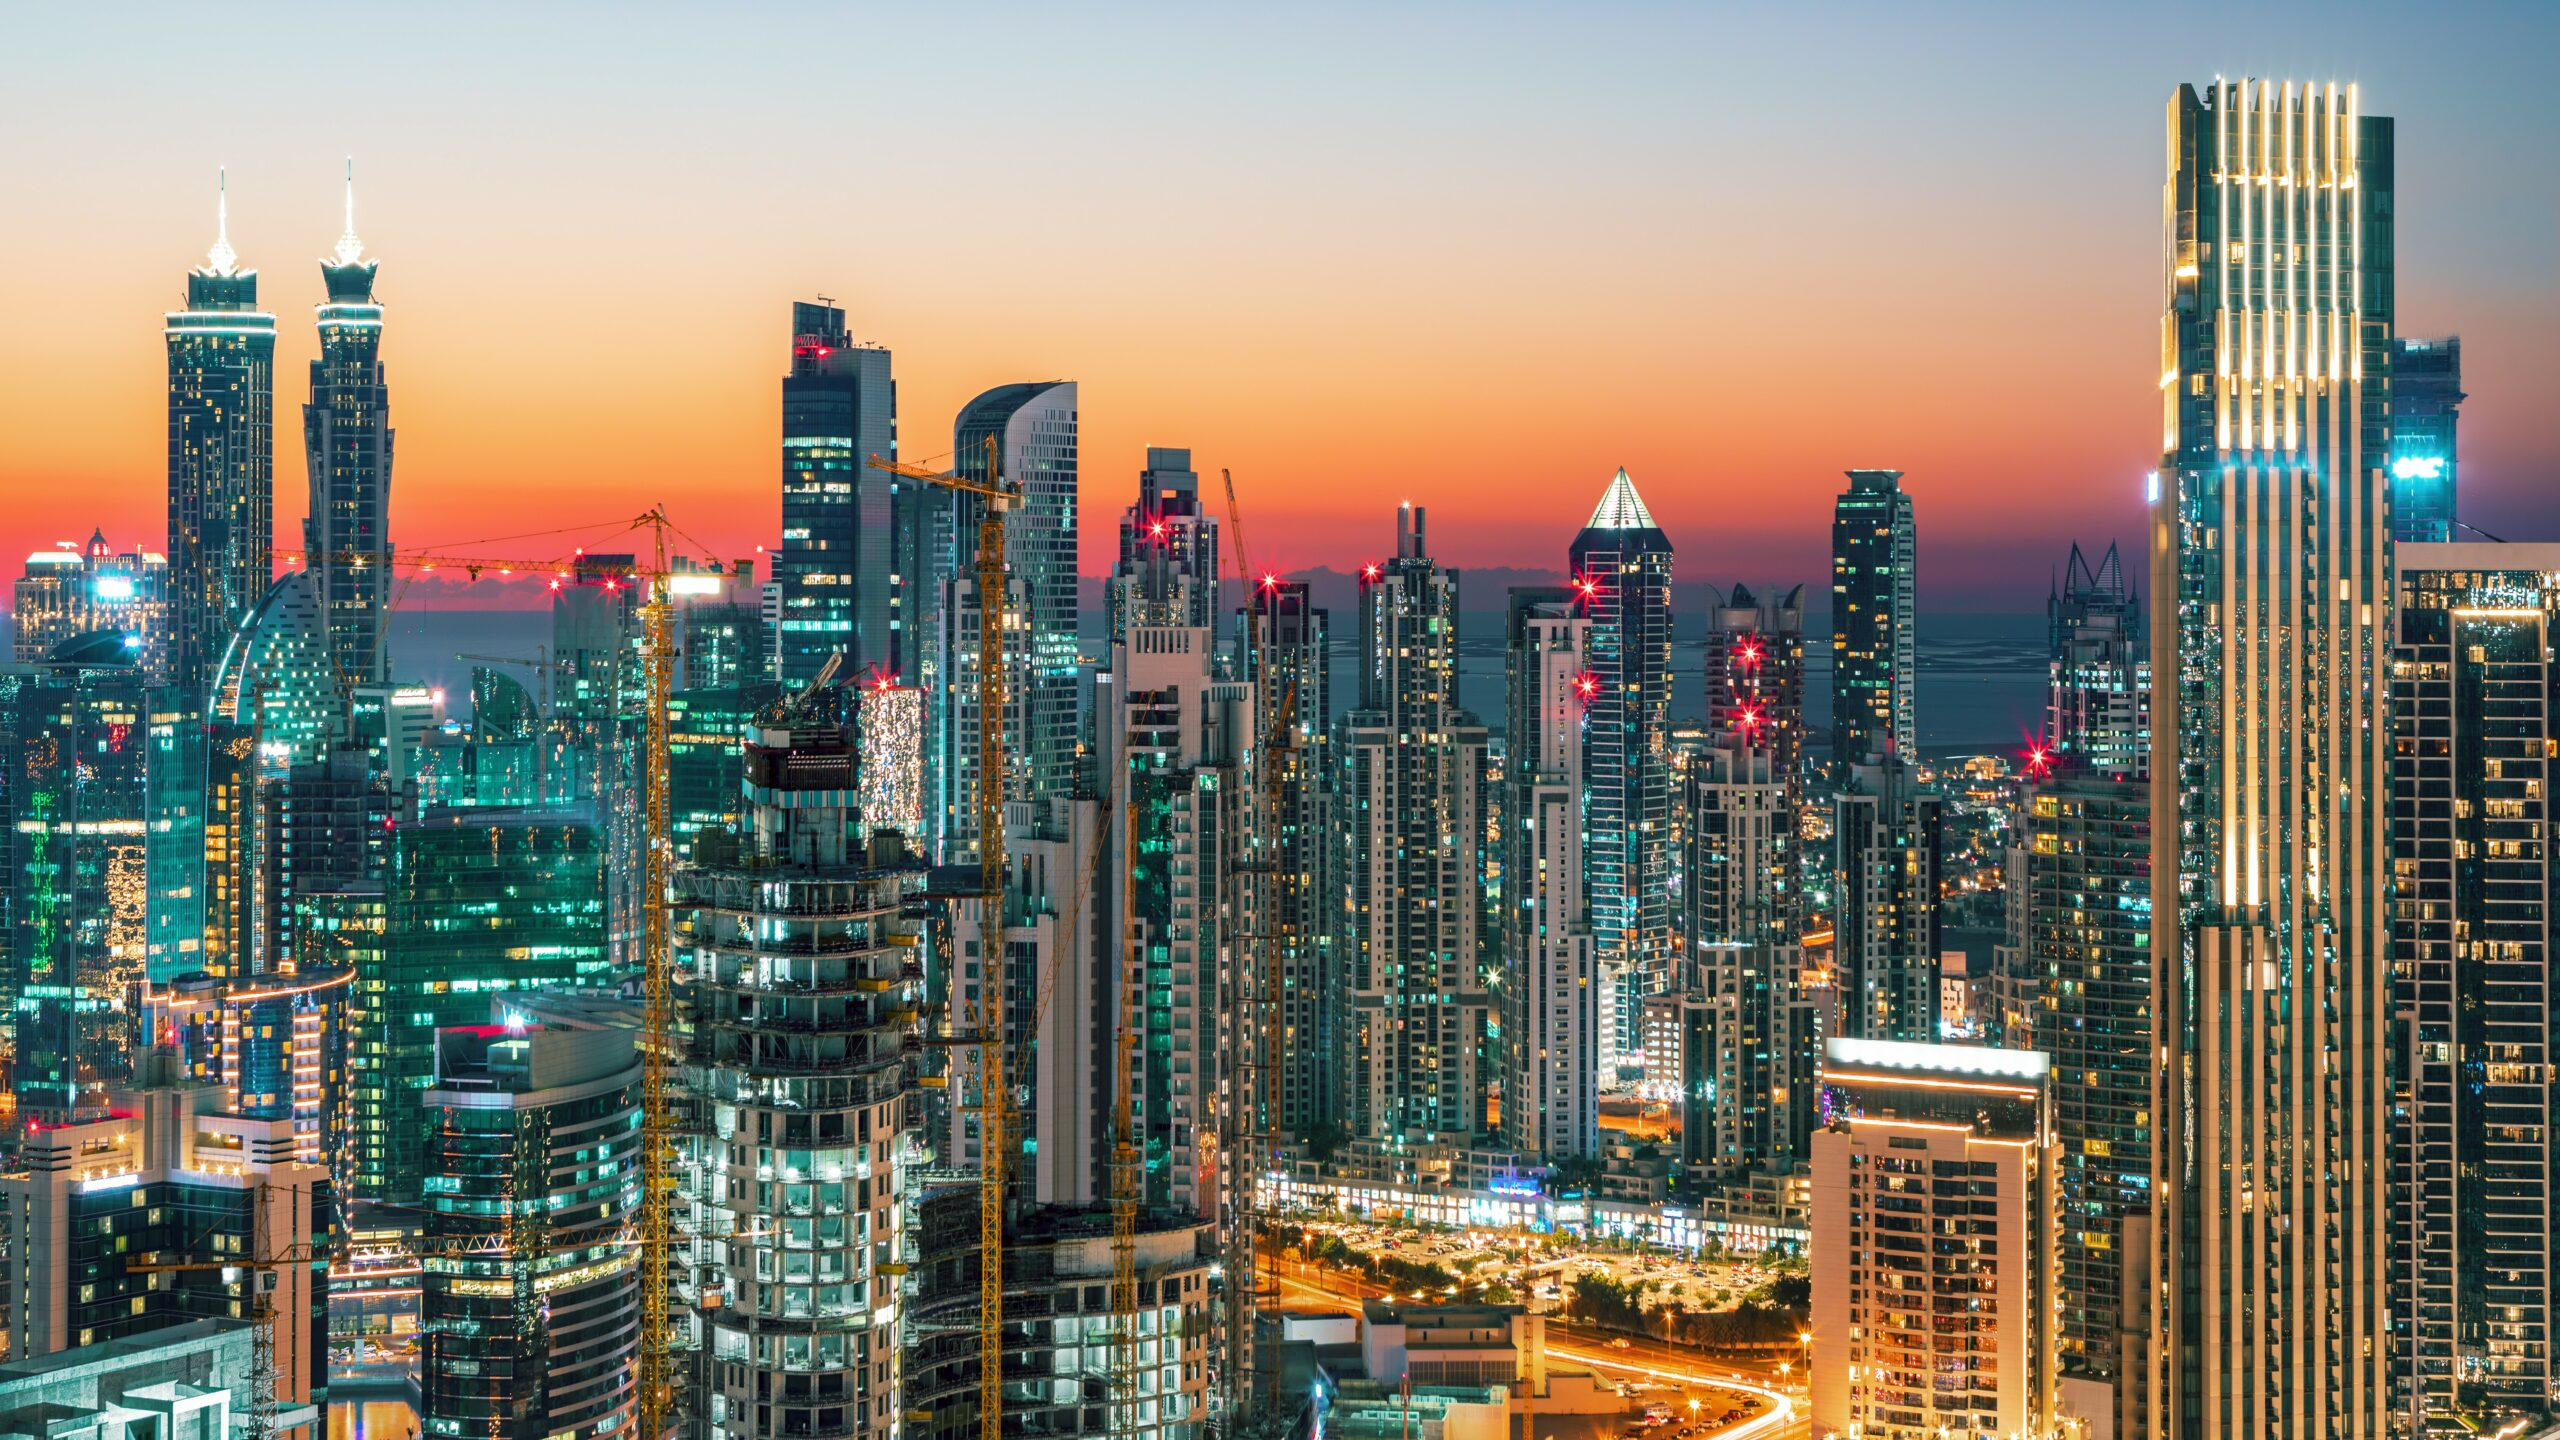 The Atlas Logistic Network is linking Dubai, United Arab Emirates to the world 1